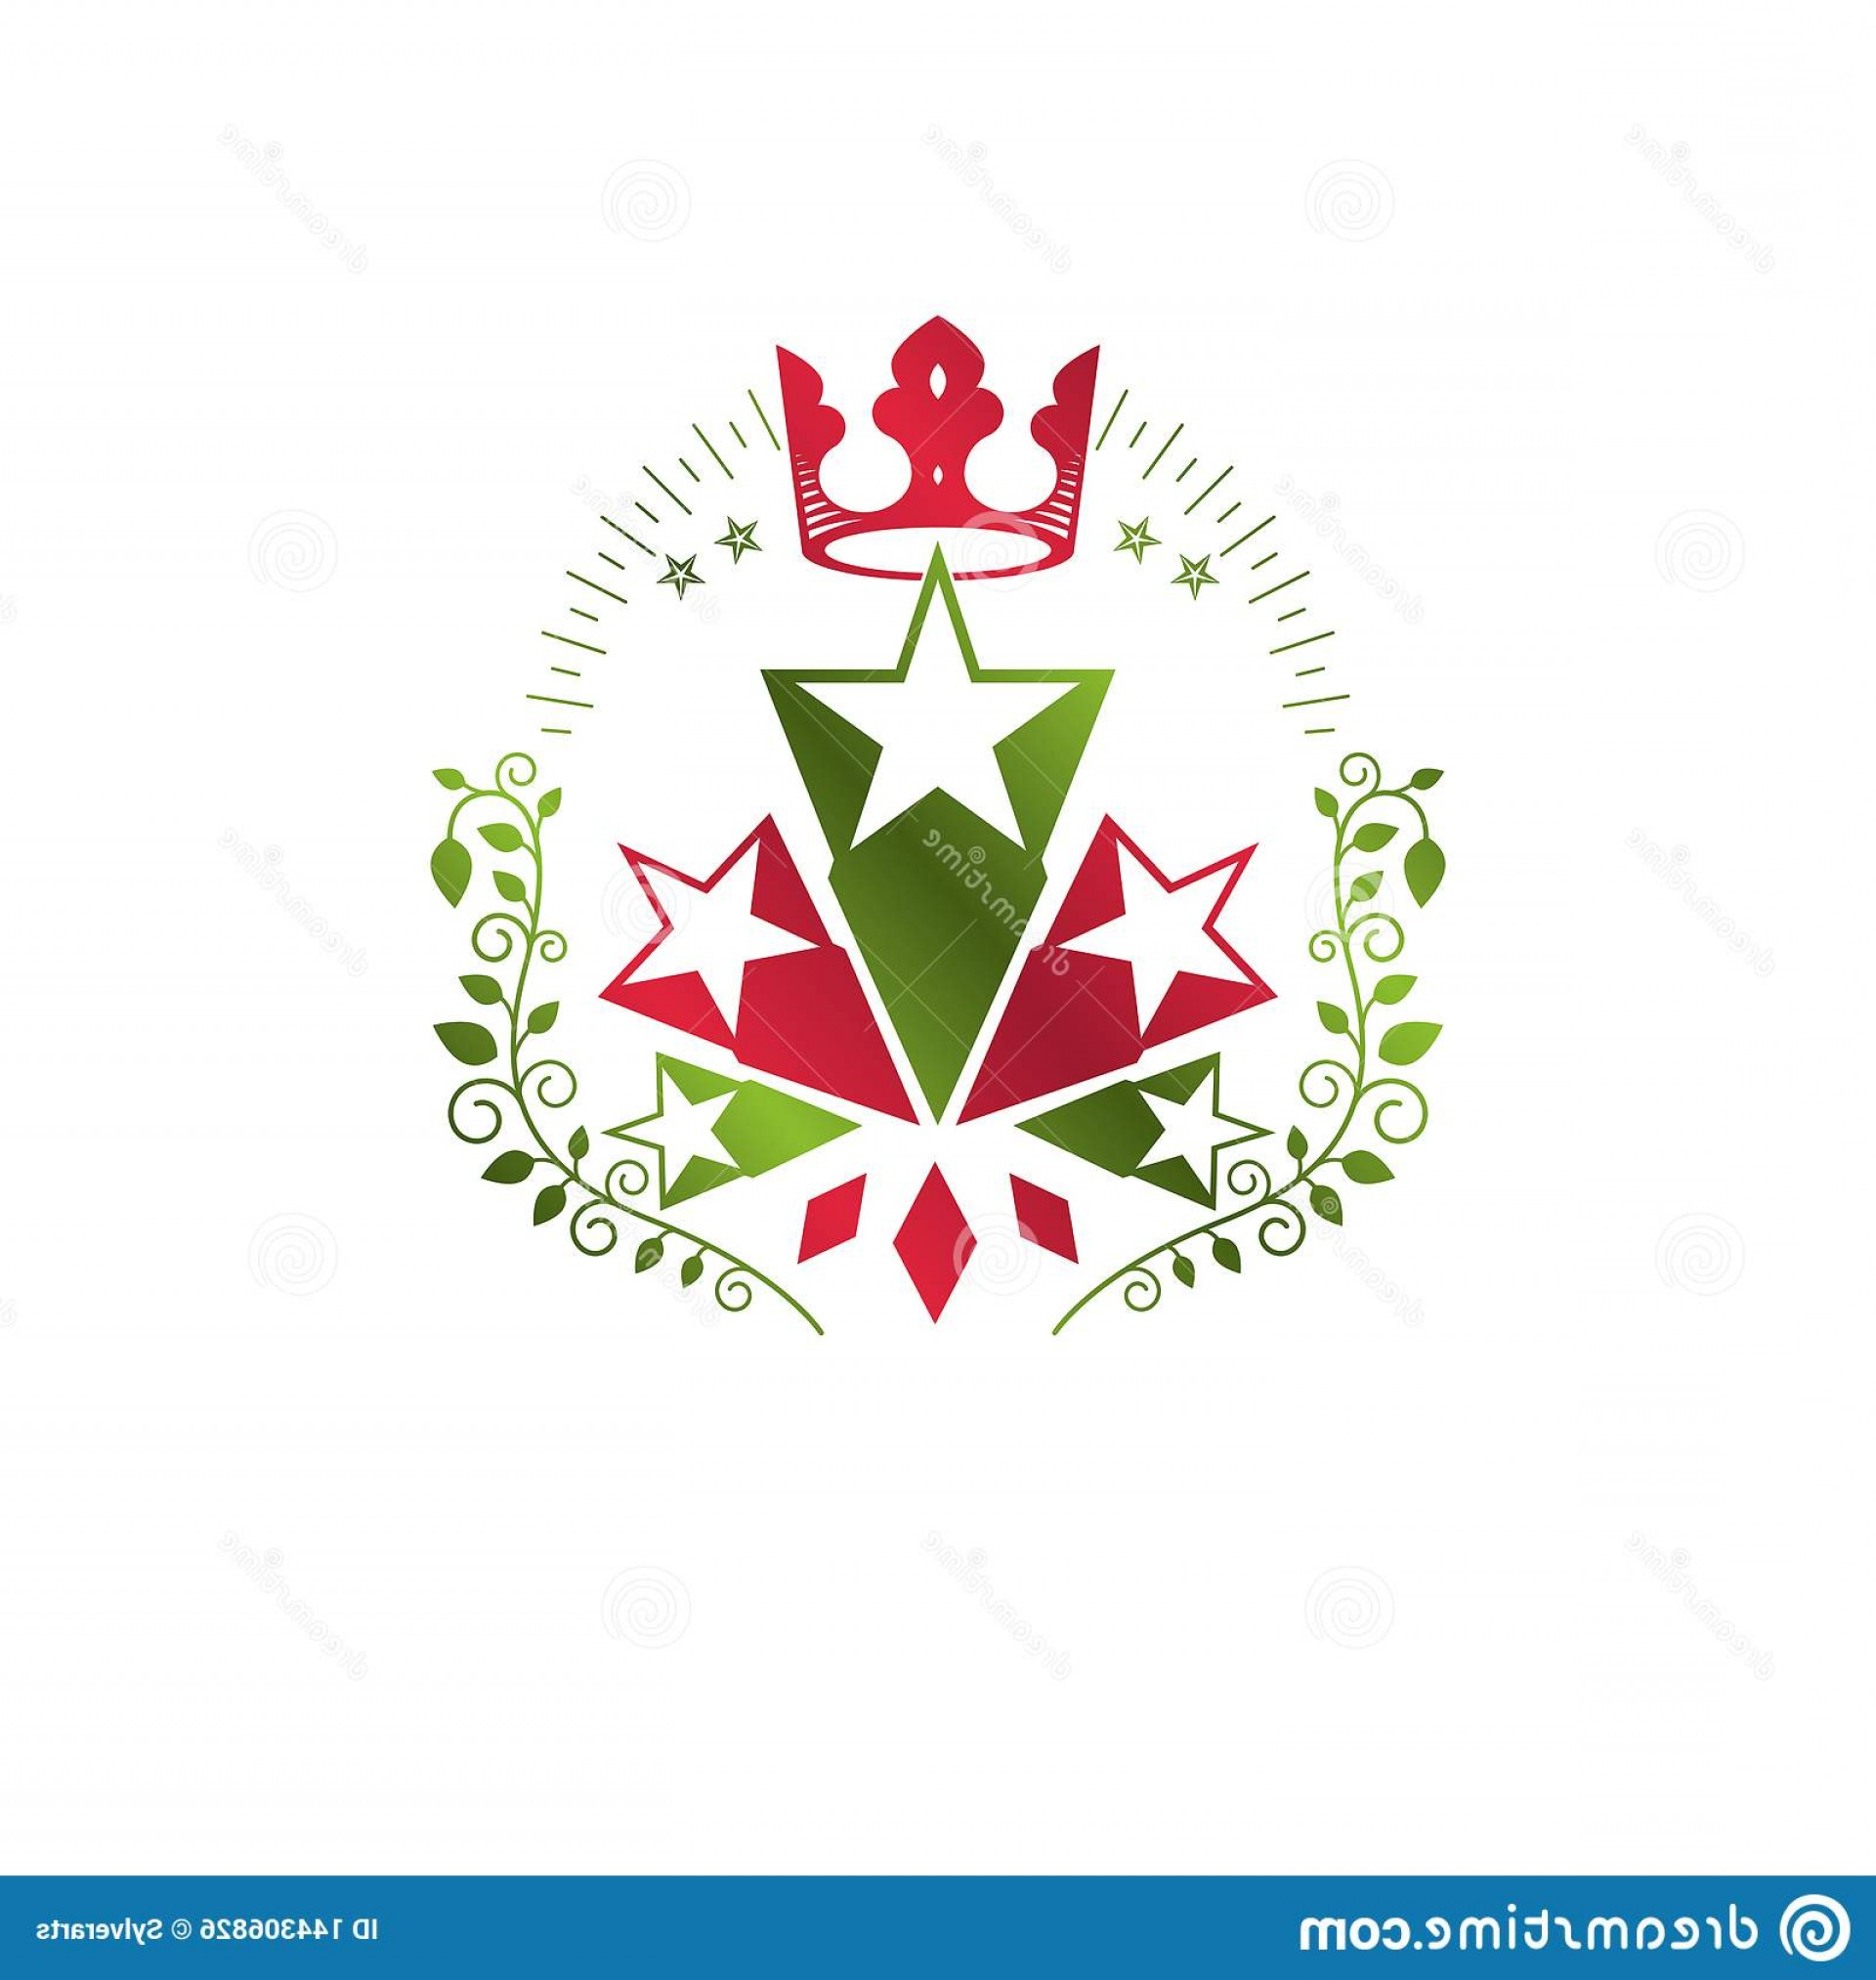 Heraldic Vector Ornaments: Military Star Emblem Created Royal Crown Floral Ornament Heraldic Vector Design Element Stars Guaranty Insignia Military Image